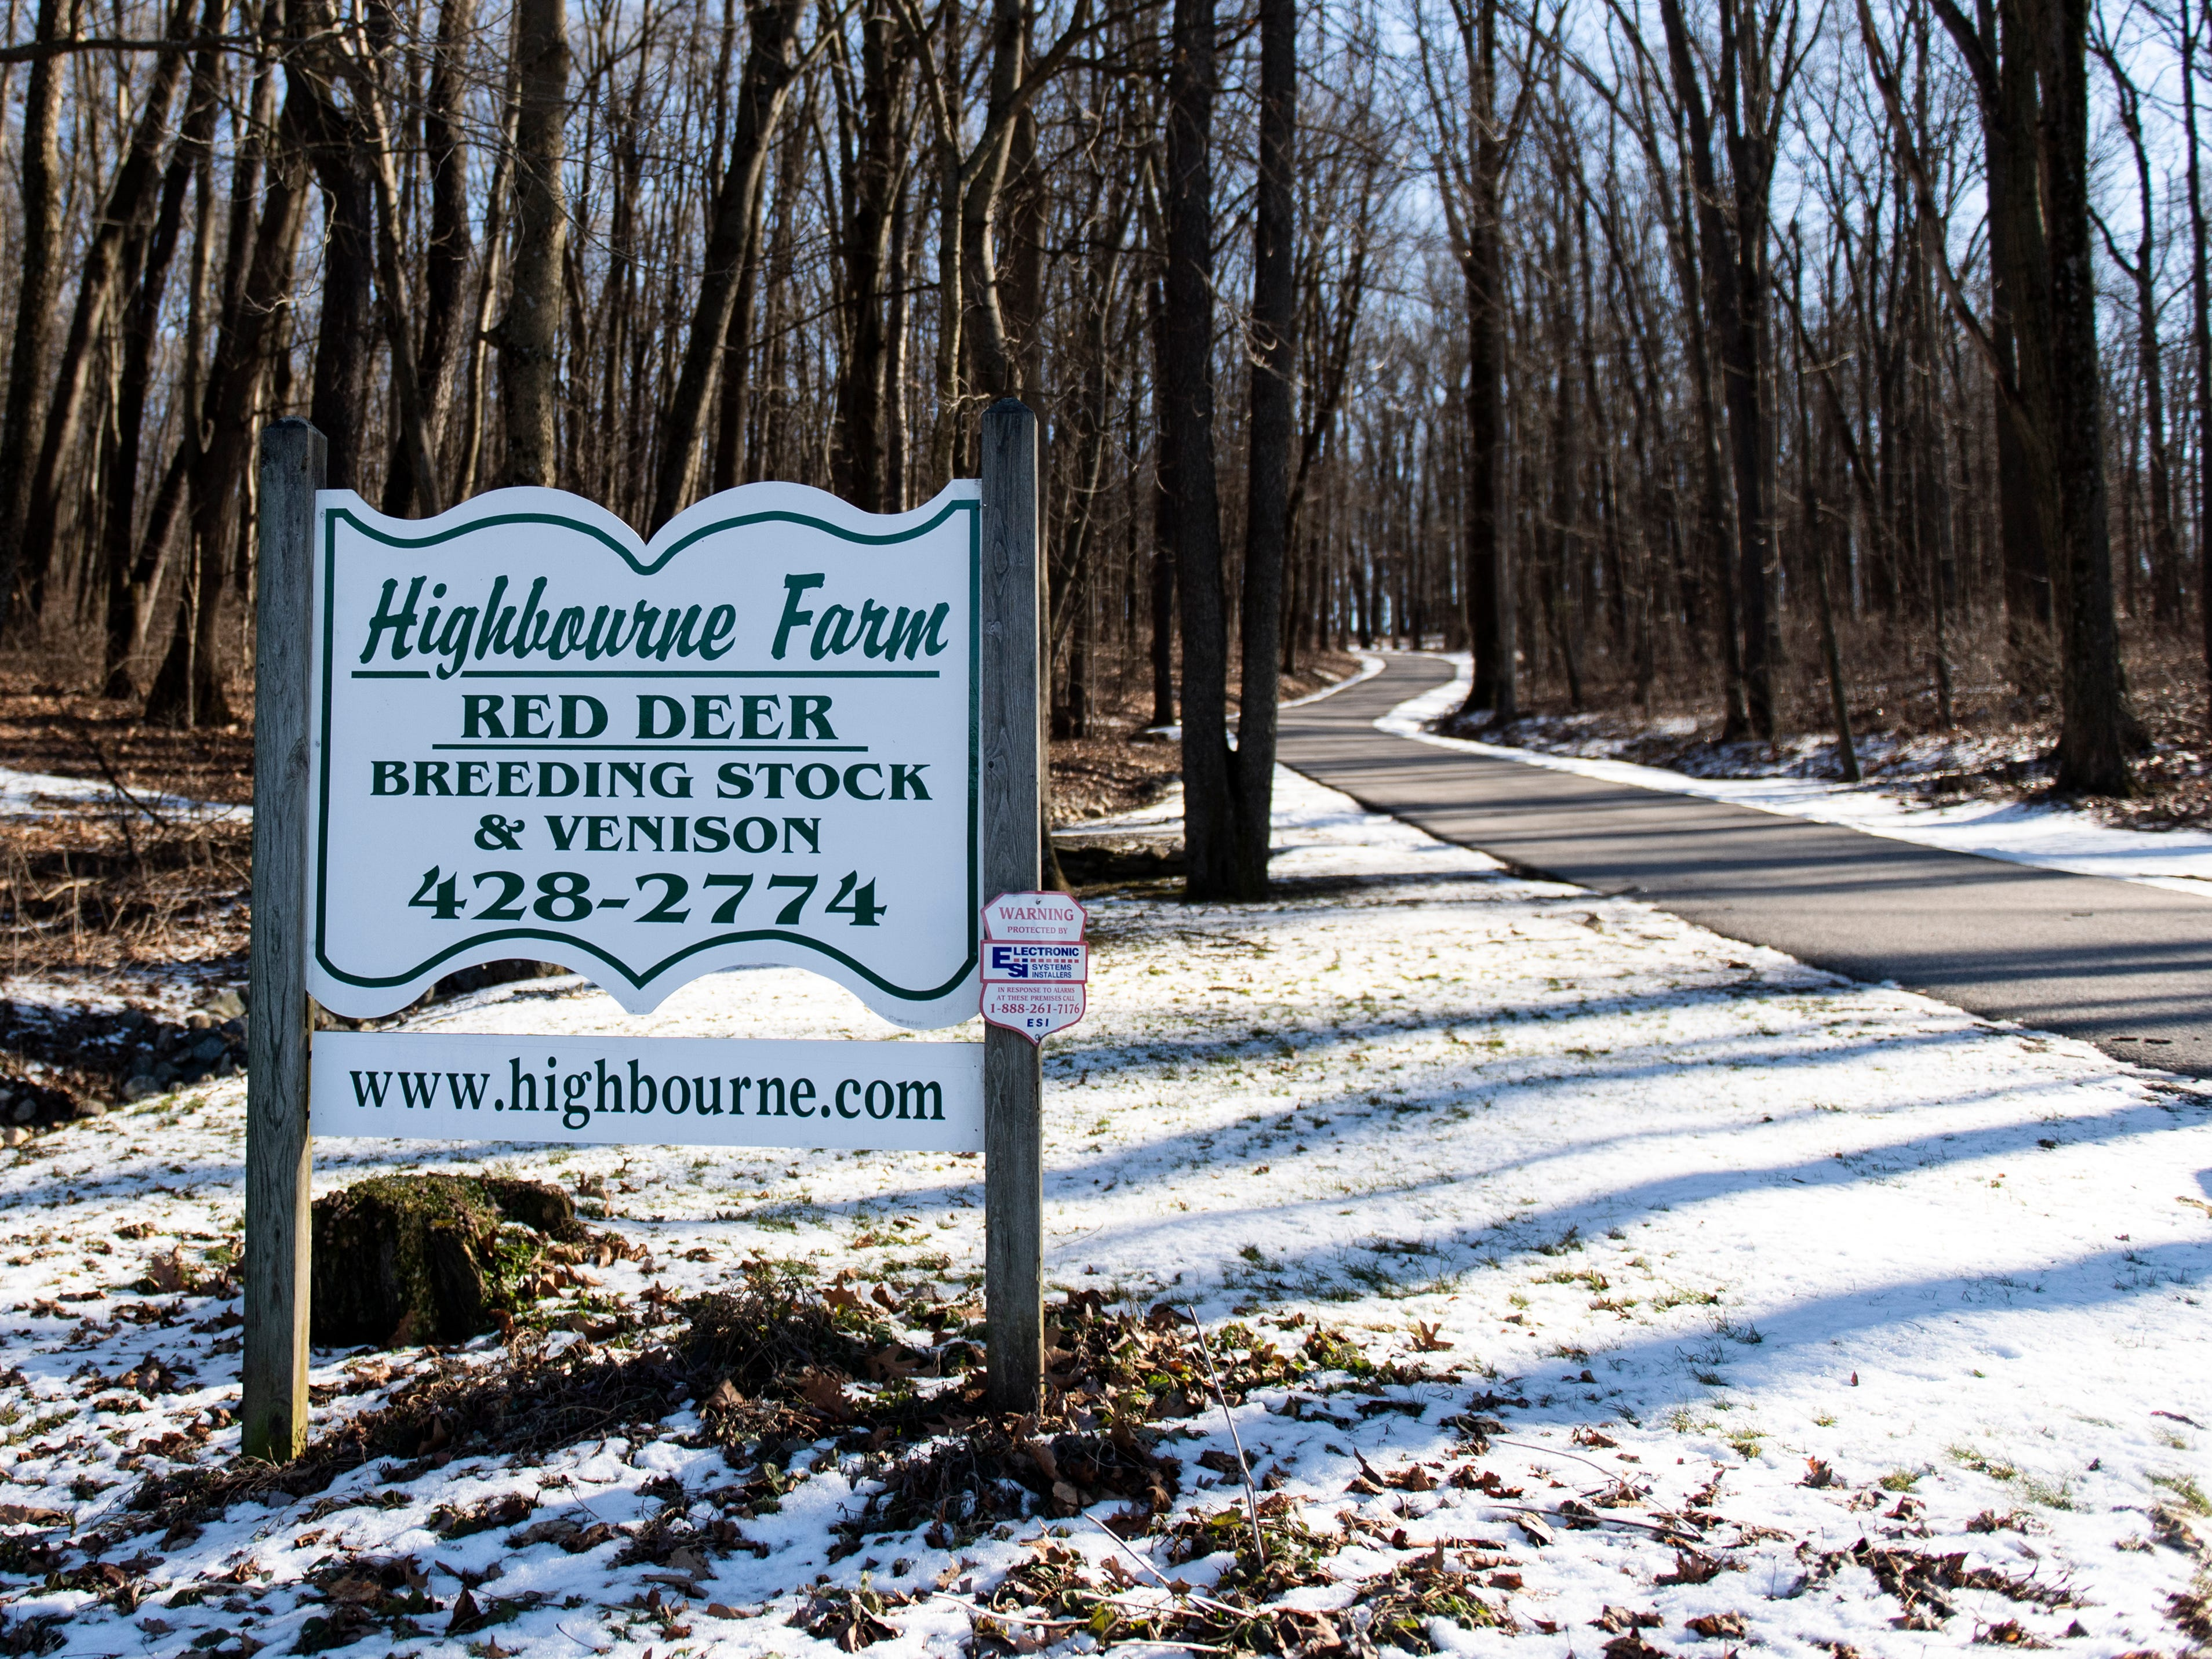 Highbourne Farms, in Dallastown, breeds Red deer for meat. It's one of the few places in the York-area where venison is readily available for purchase year-round.